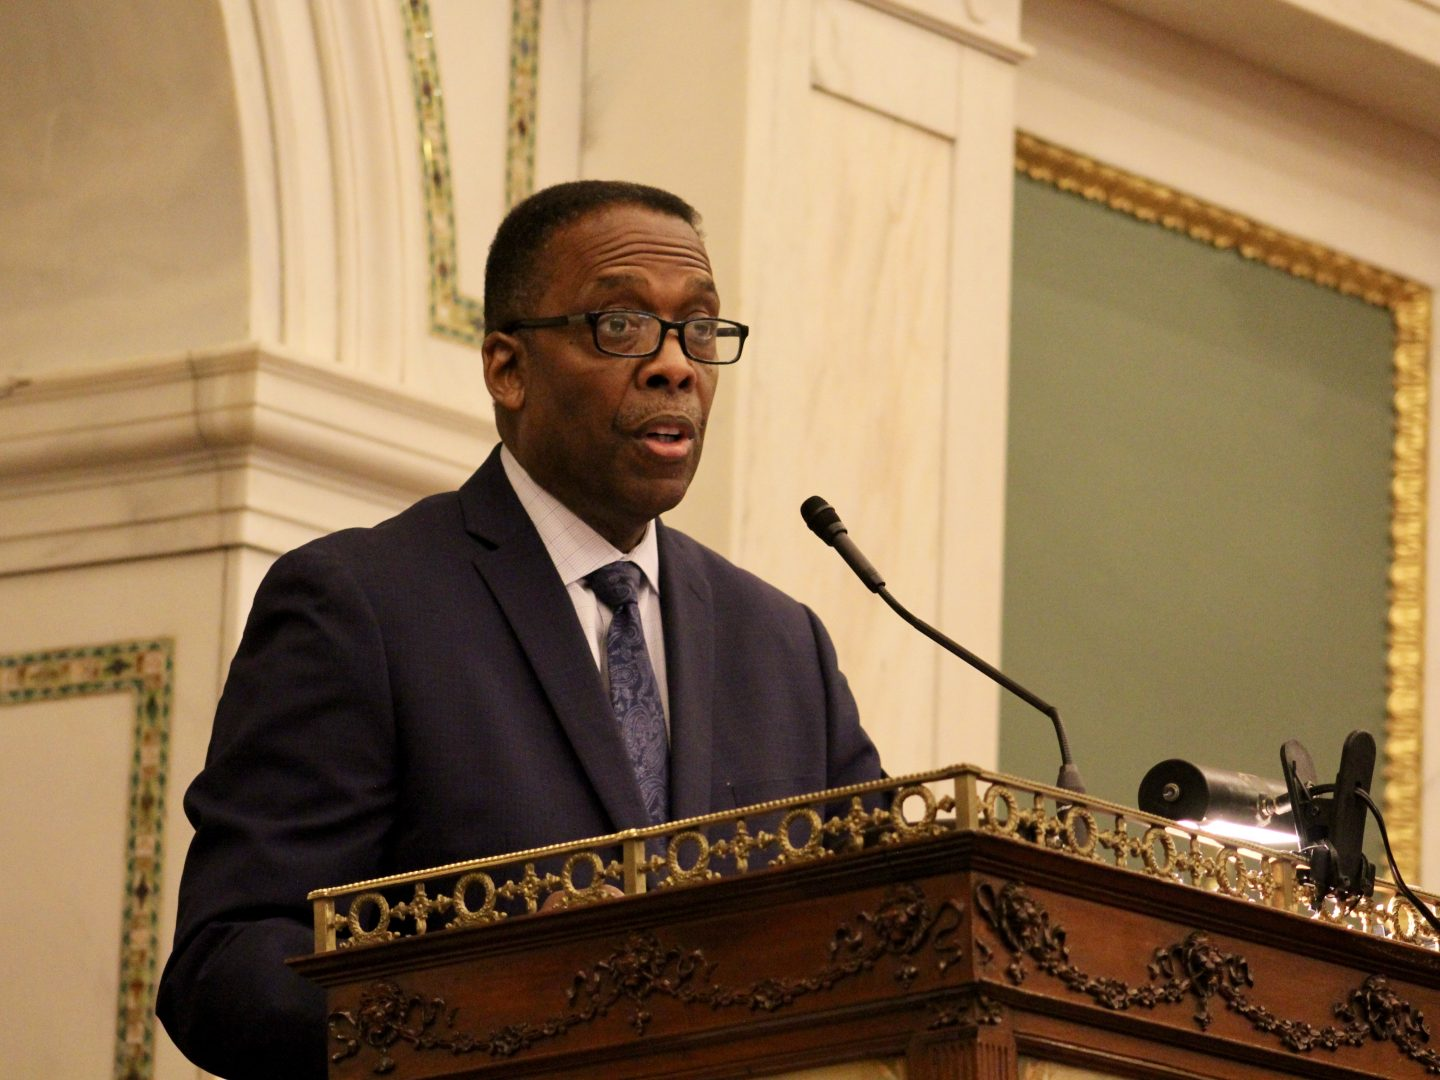 Council President Darrell Clarke stands and speaks into a microphone.